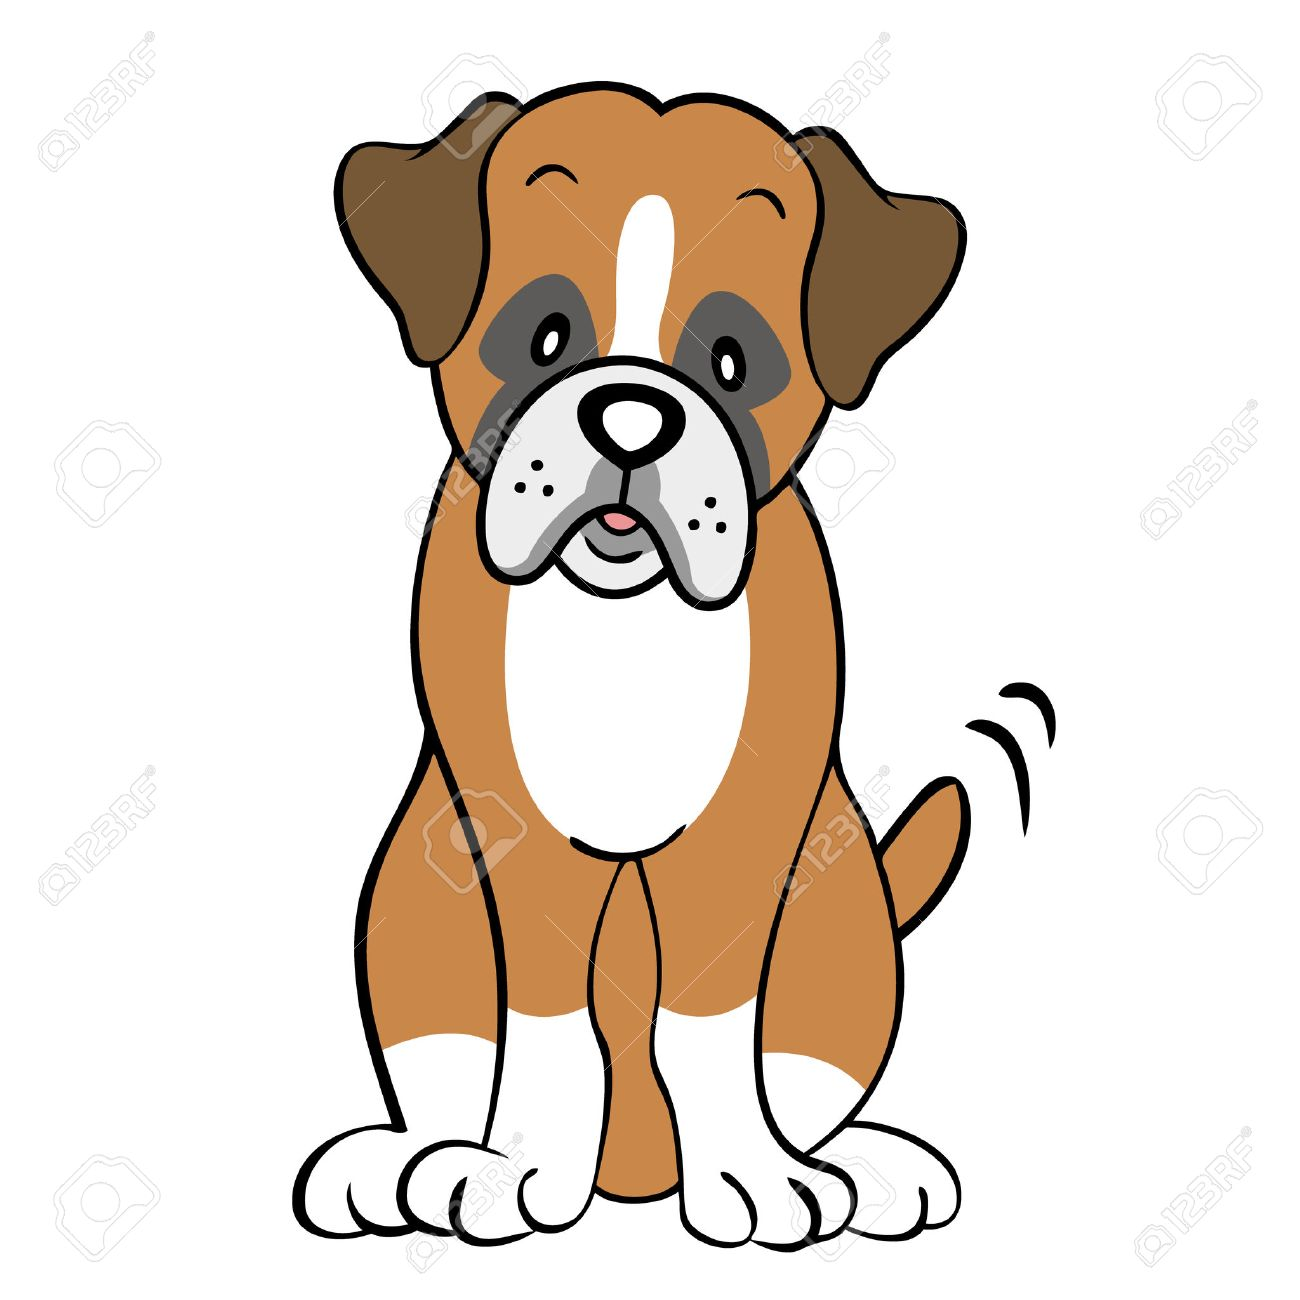 boxer dog isolated royalty free cliparts vectors and stock rh 123rf com boxer dog clipart free Boxer Dog Silhouette Clip Art